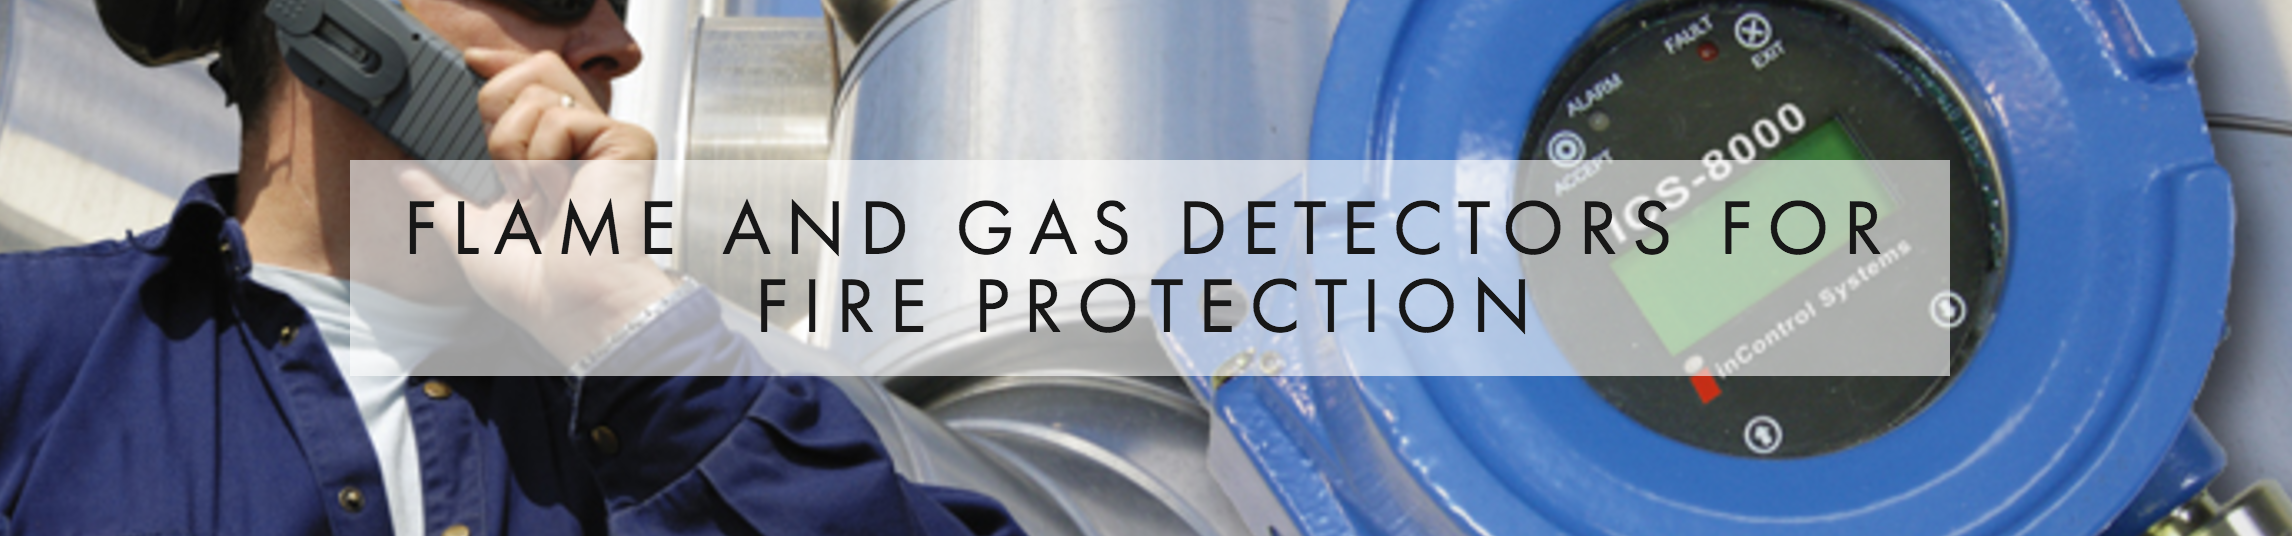 FLAME AND GAS DETECTION